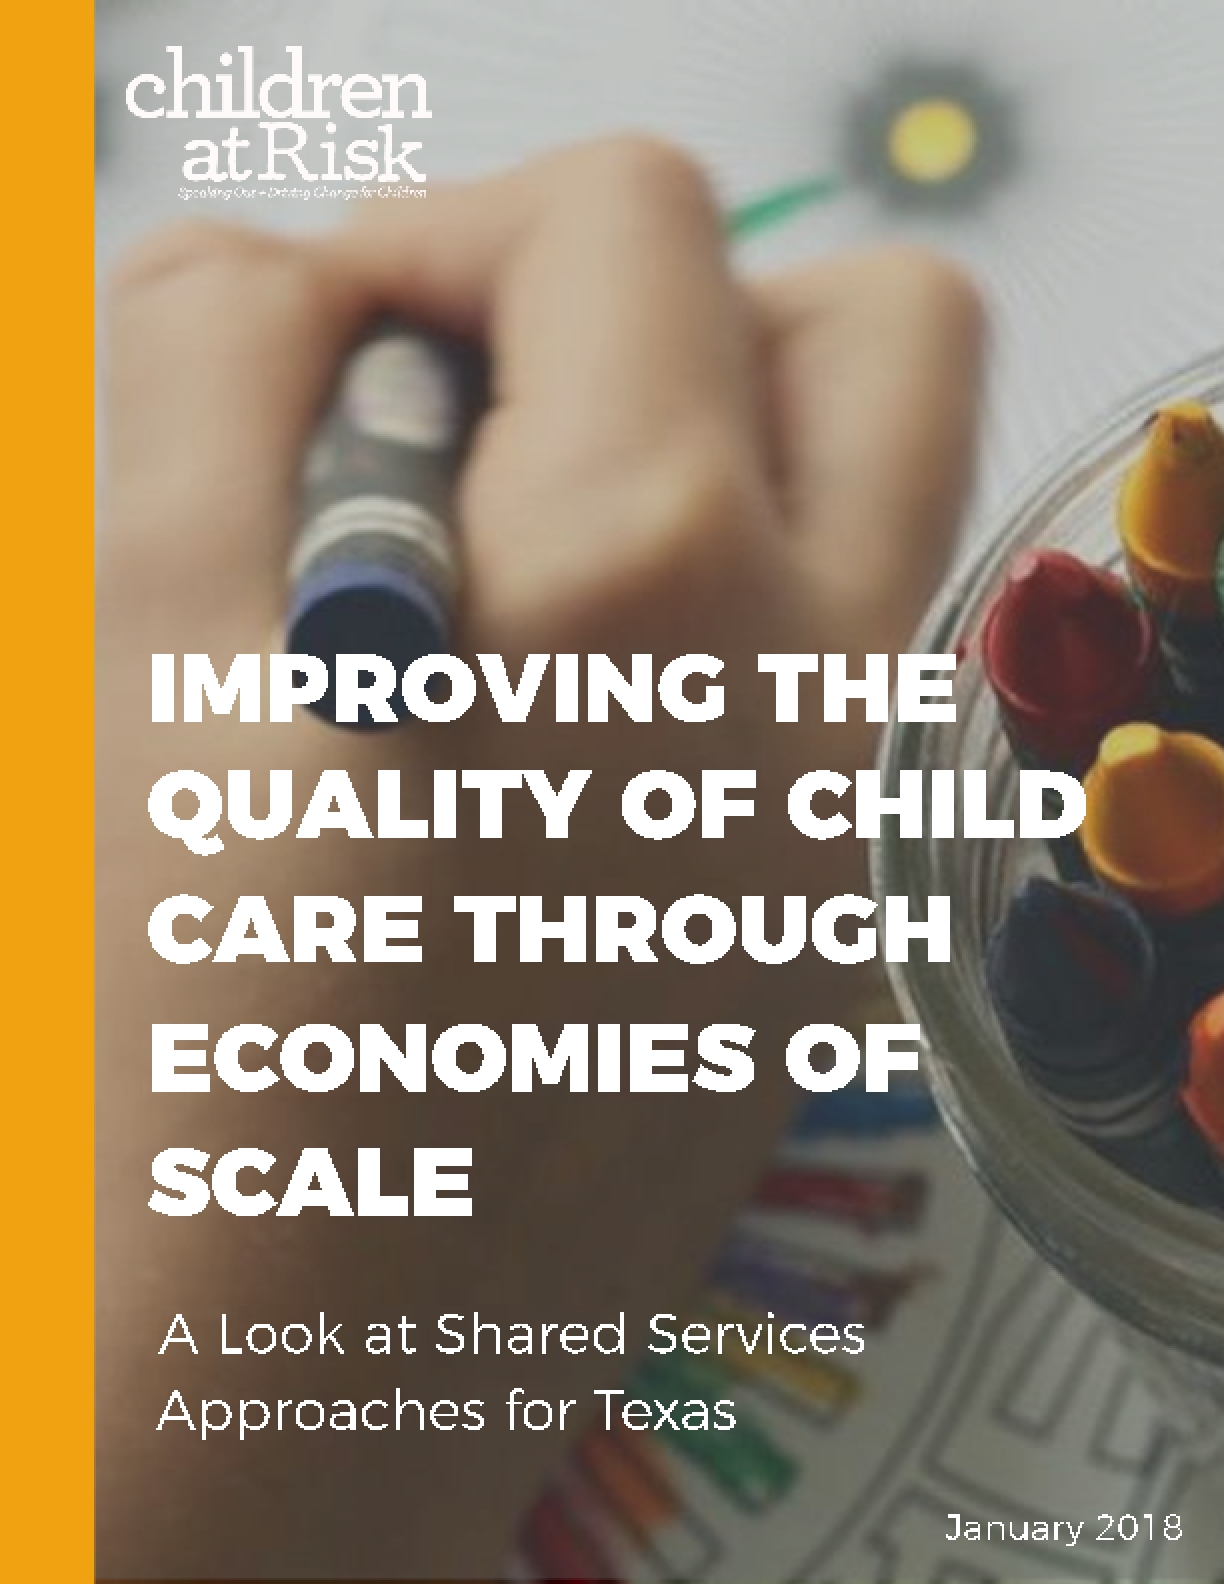 Improving the Quality of Child Care Through Economies of Scale: A Look at Shared Services Approaches for Texas